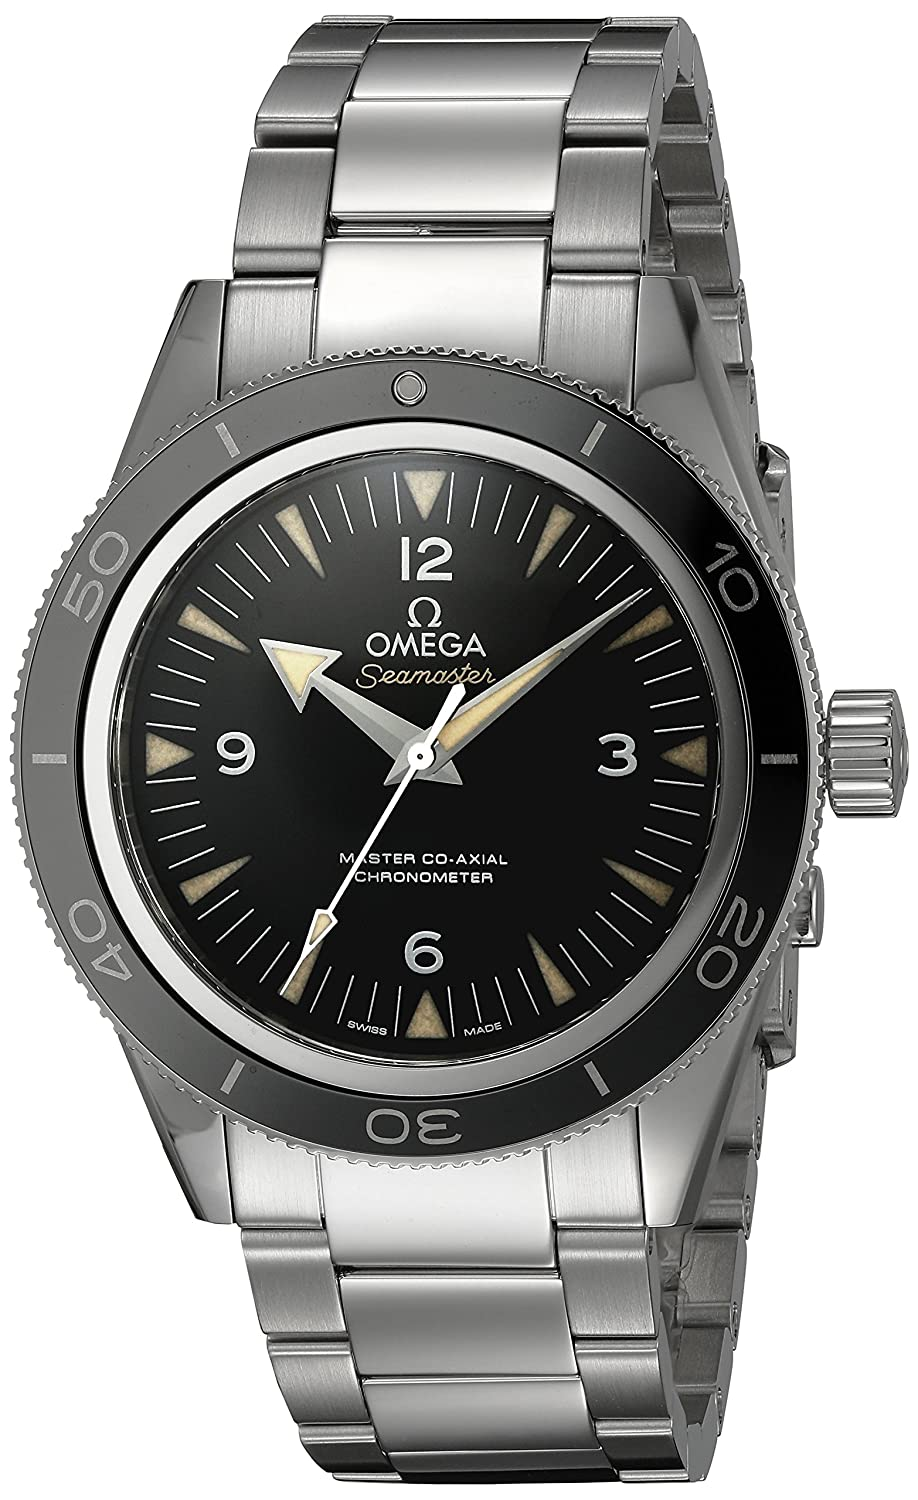 Omega Seamaster 300 Master Co-axial 41 mm 233.30.41.21.01.001